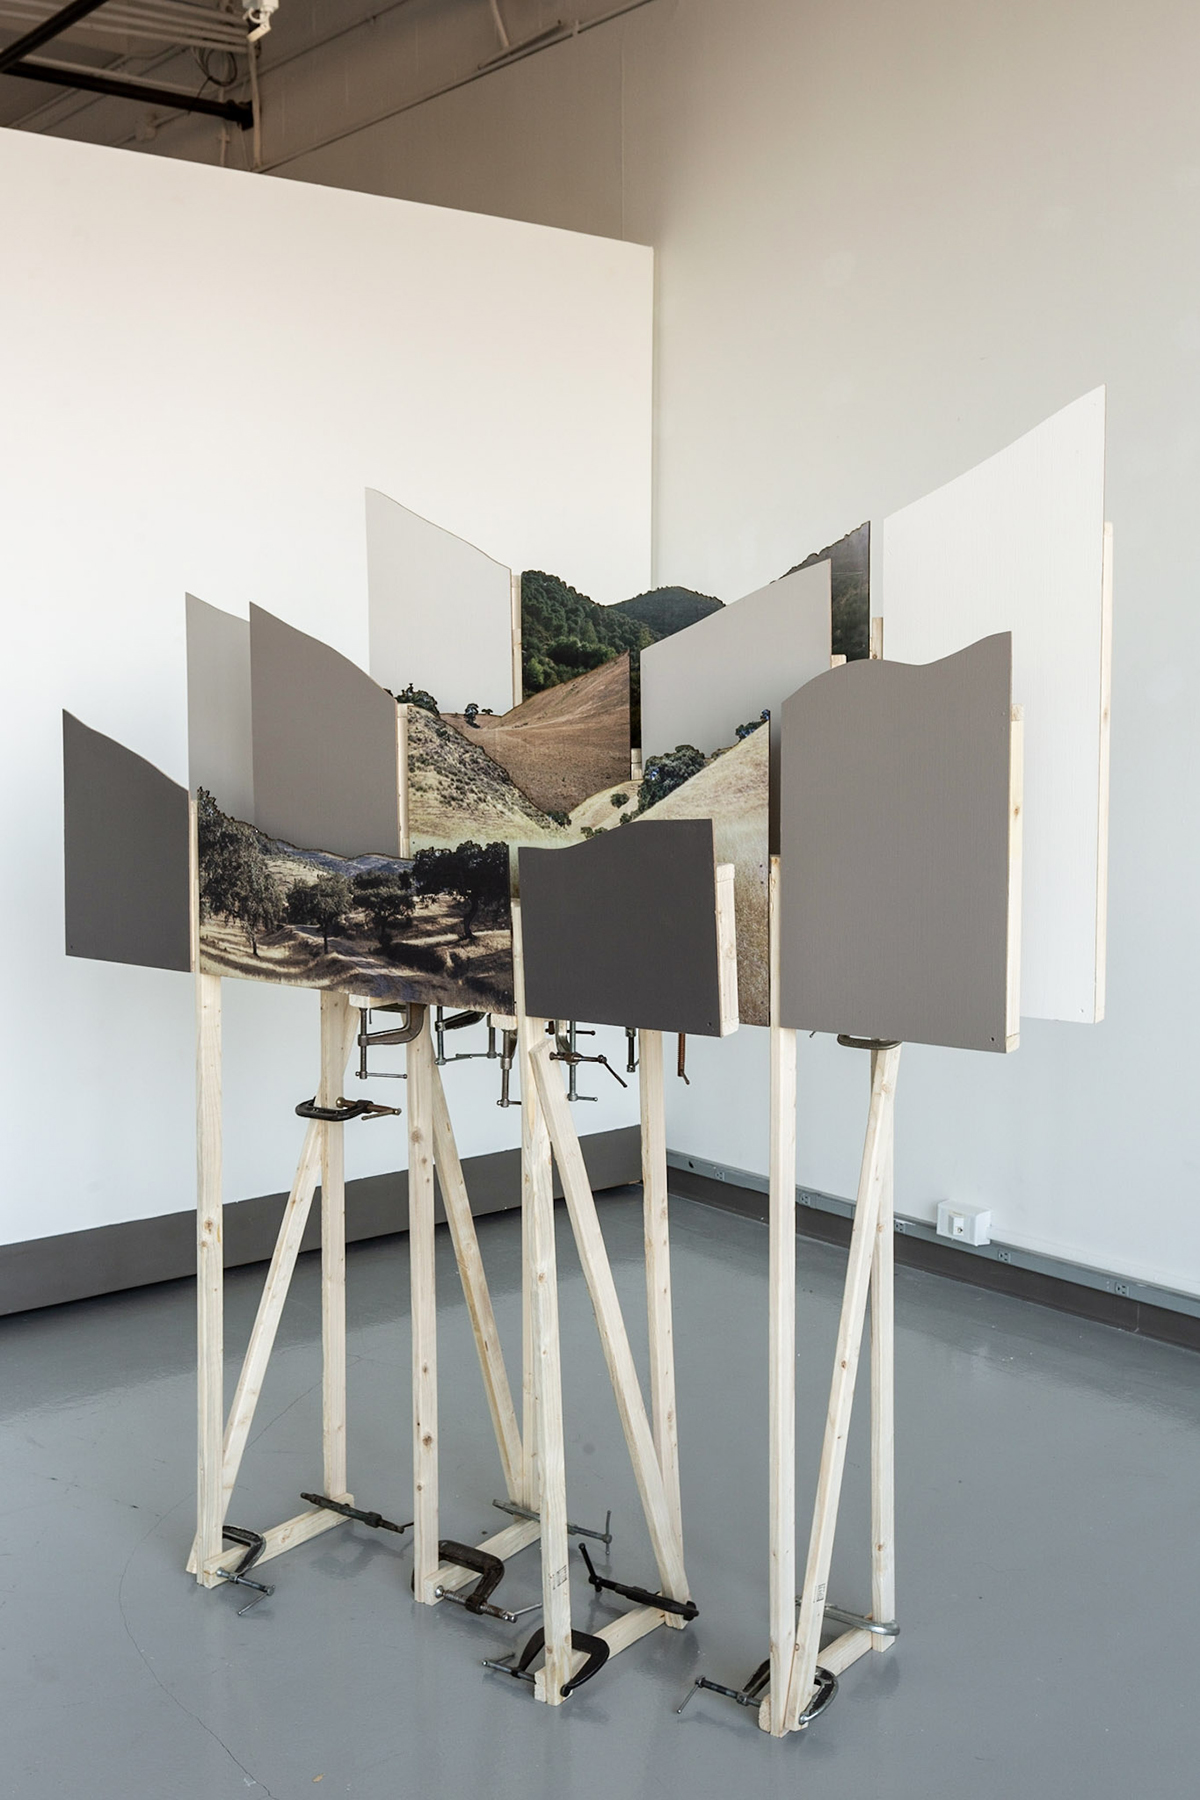 A series of photo prints sits on an intricate easel-type structure.